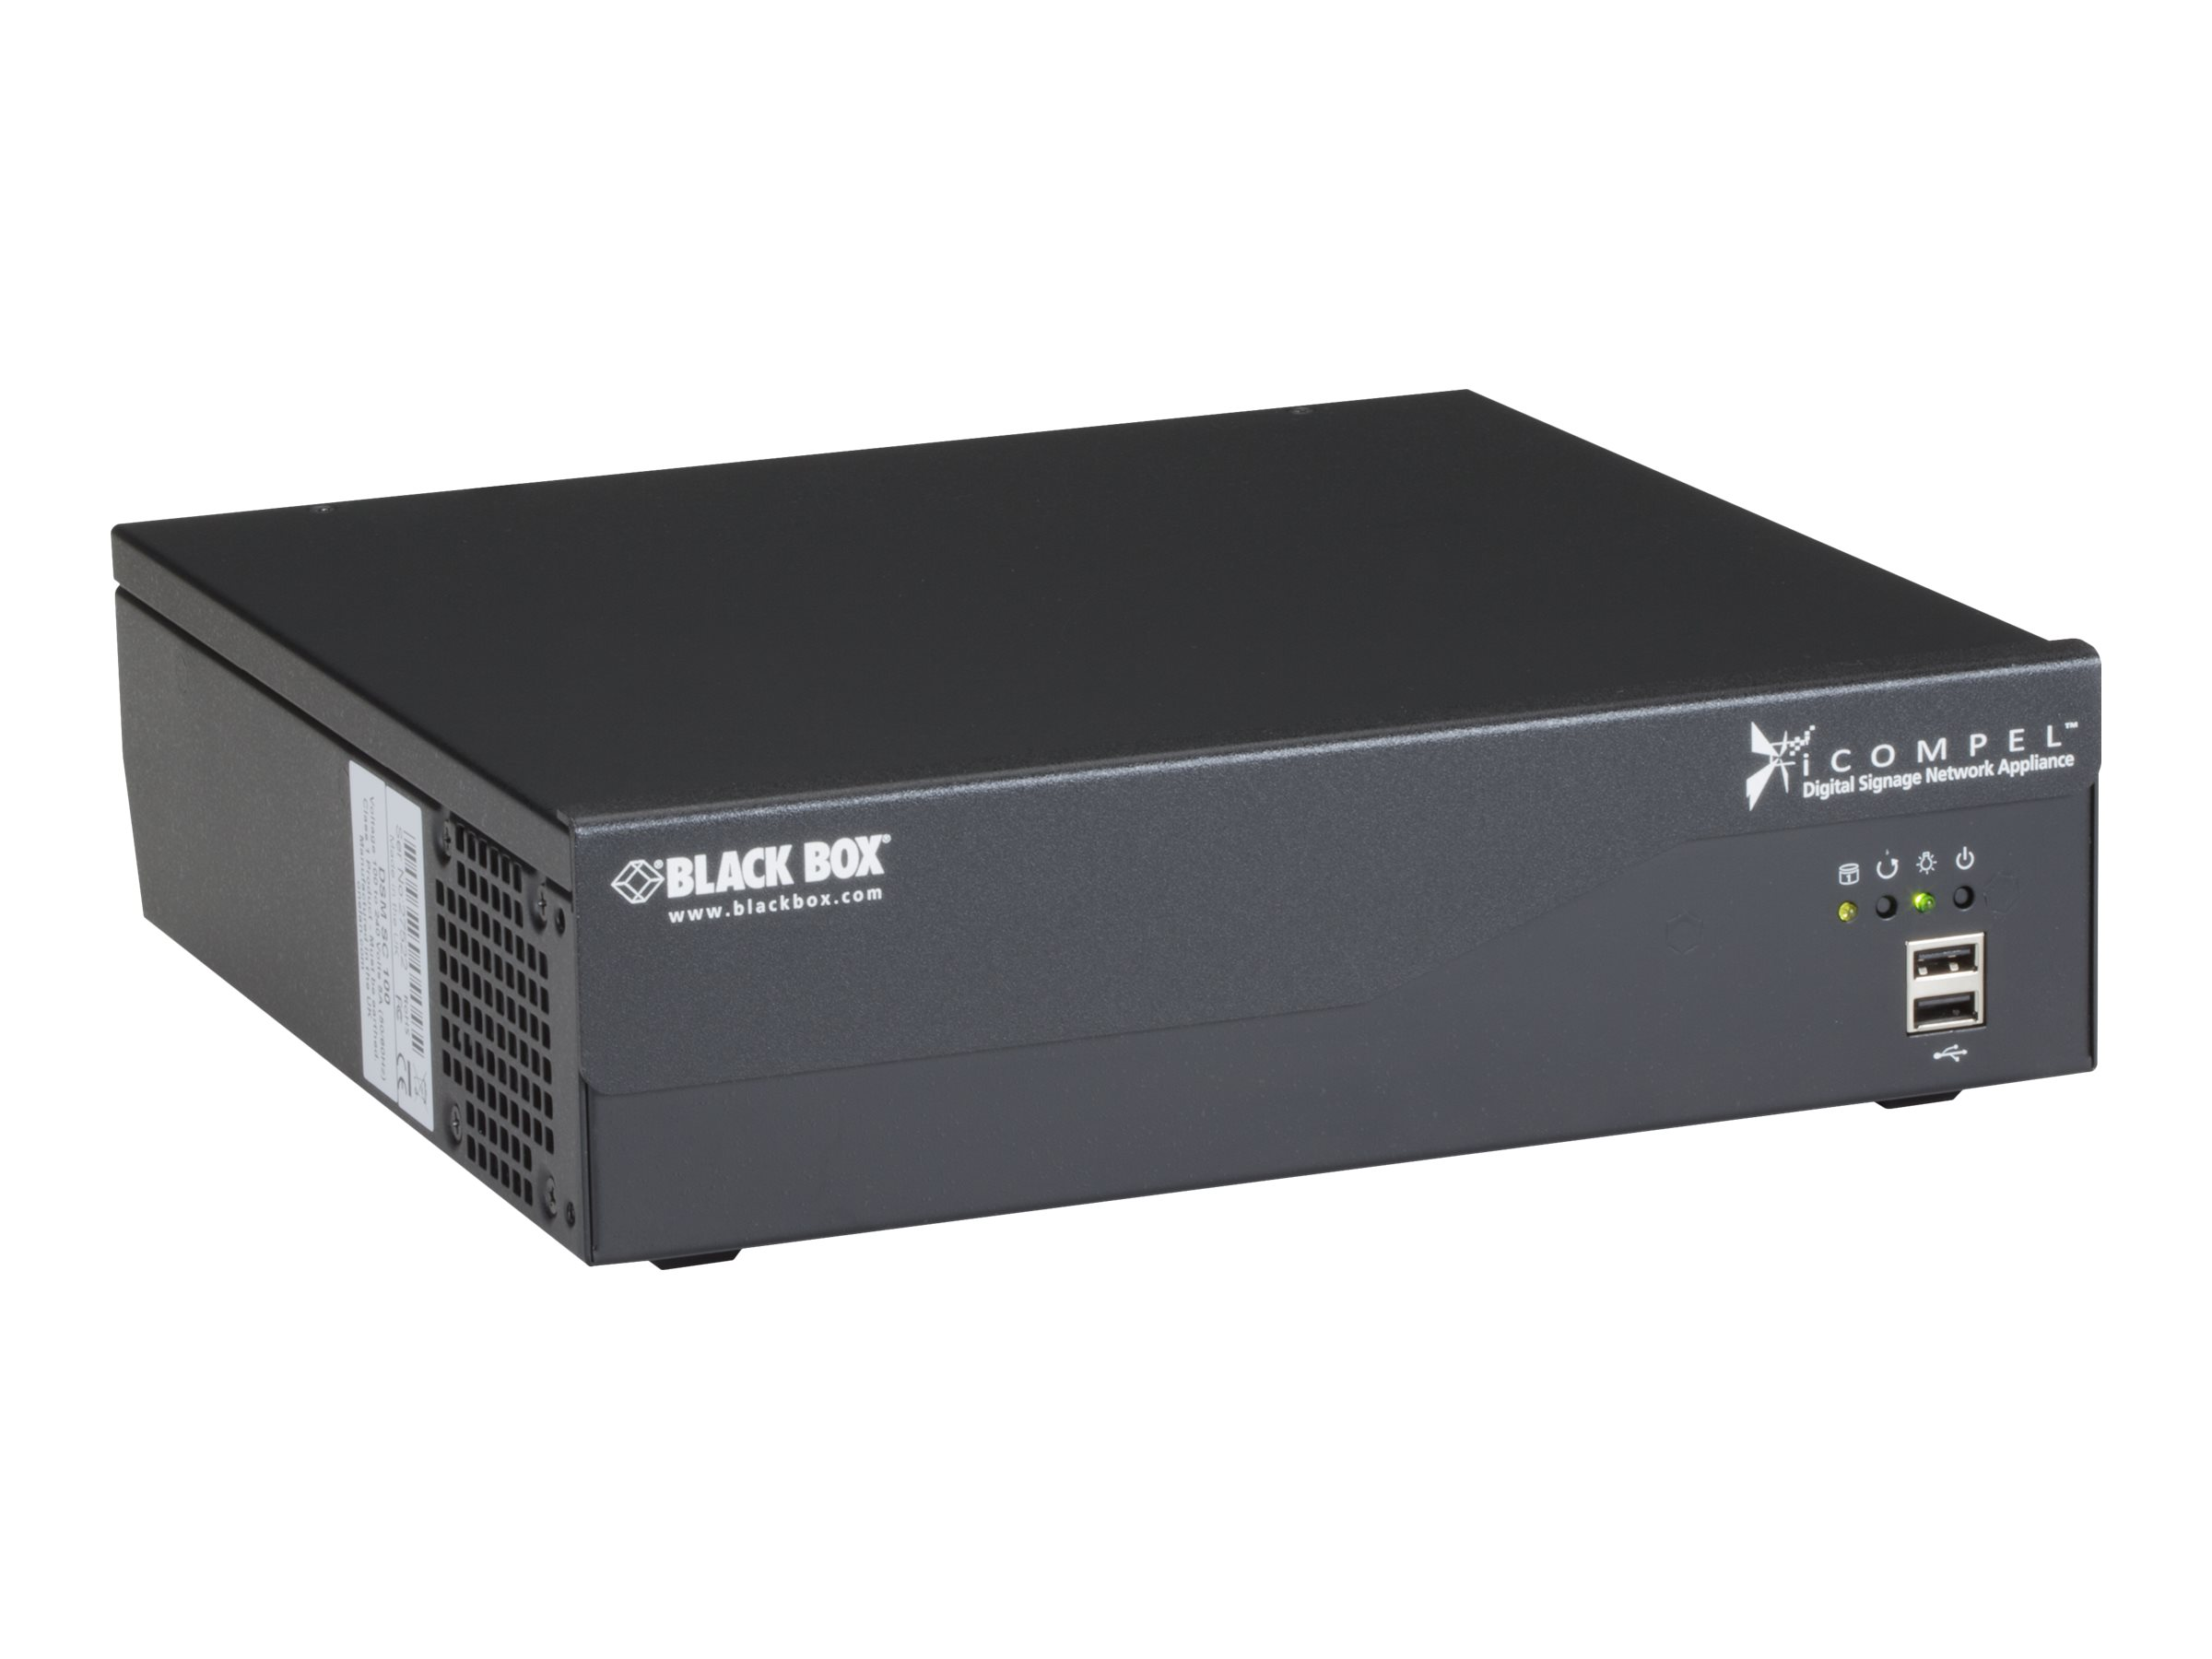 Black Box iCOMPEL Deployment Manager 500 Device - Network management device - GigE - desktop